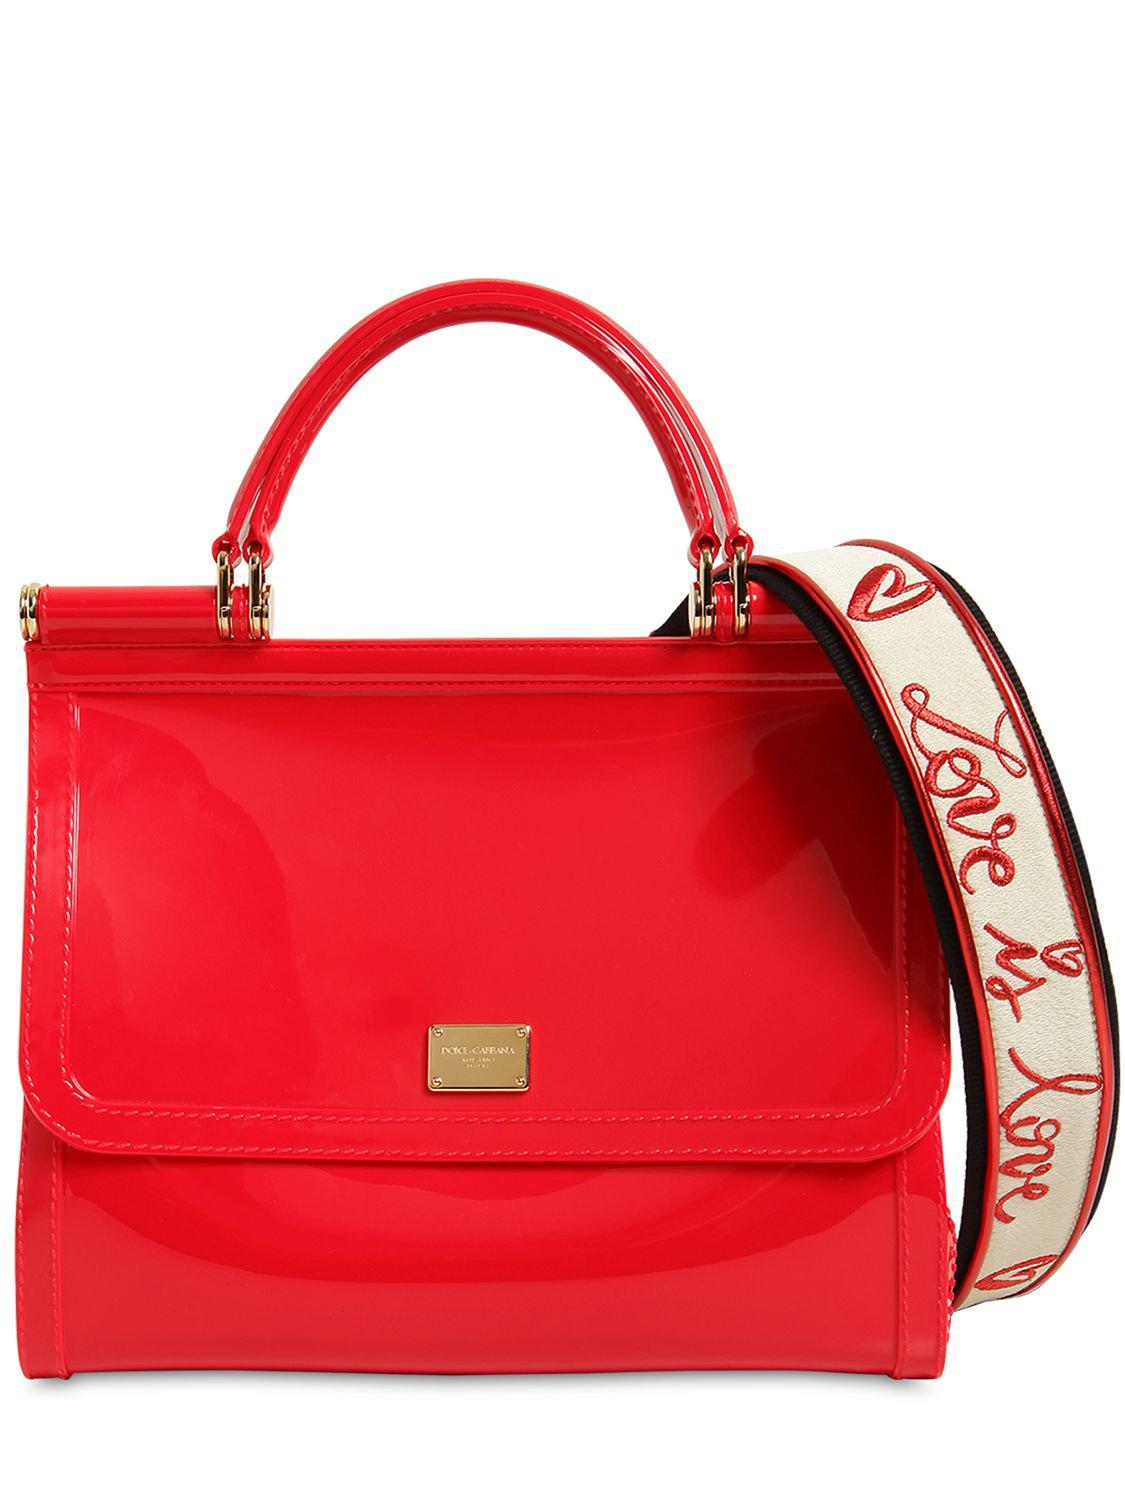 15c5731b8e Lyst - Dolce   Gabbana Sicily Faux Patent Leather Bag in Red